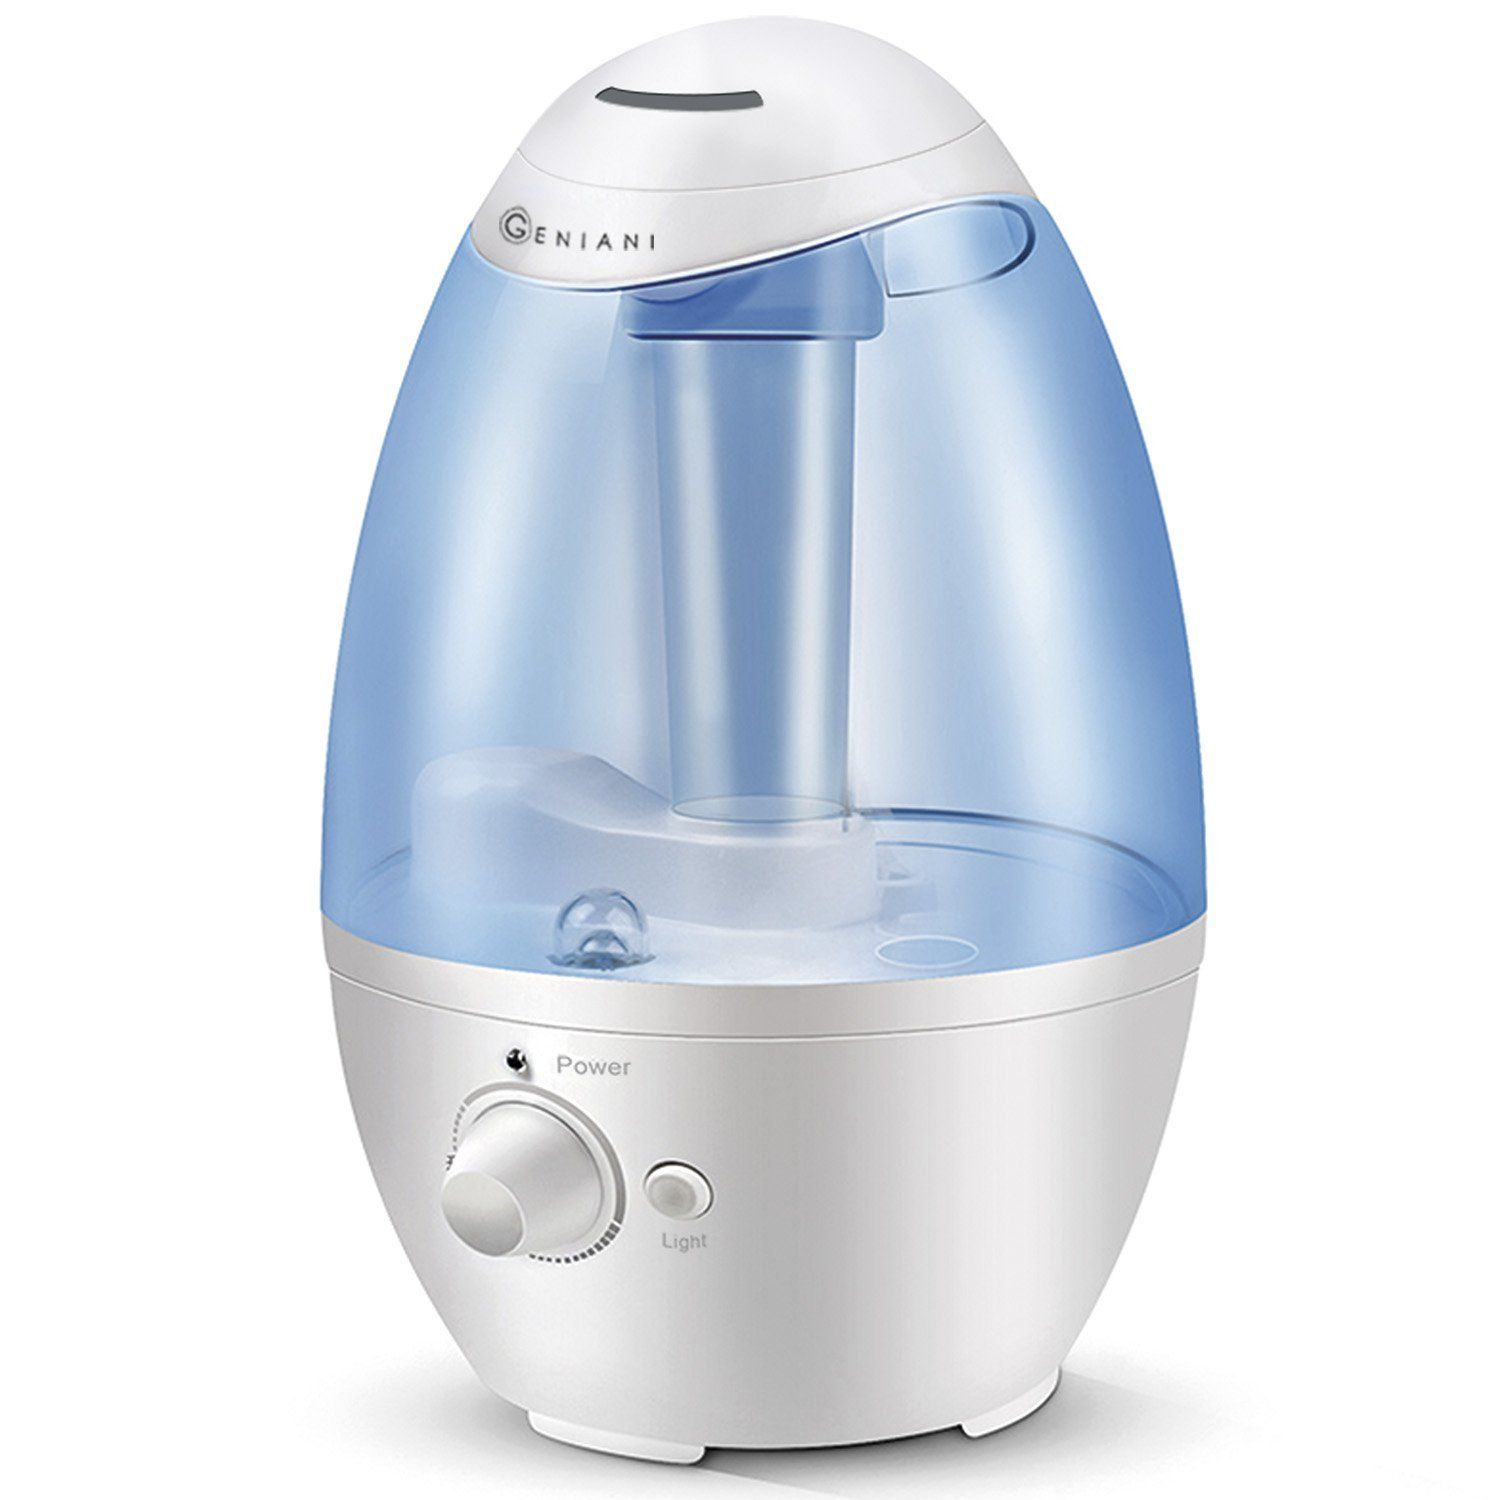 Best Filterless Humidifier 2020 | HowtoHome